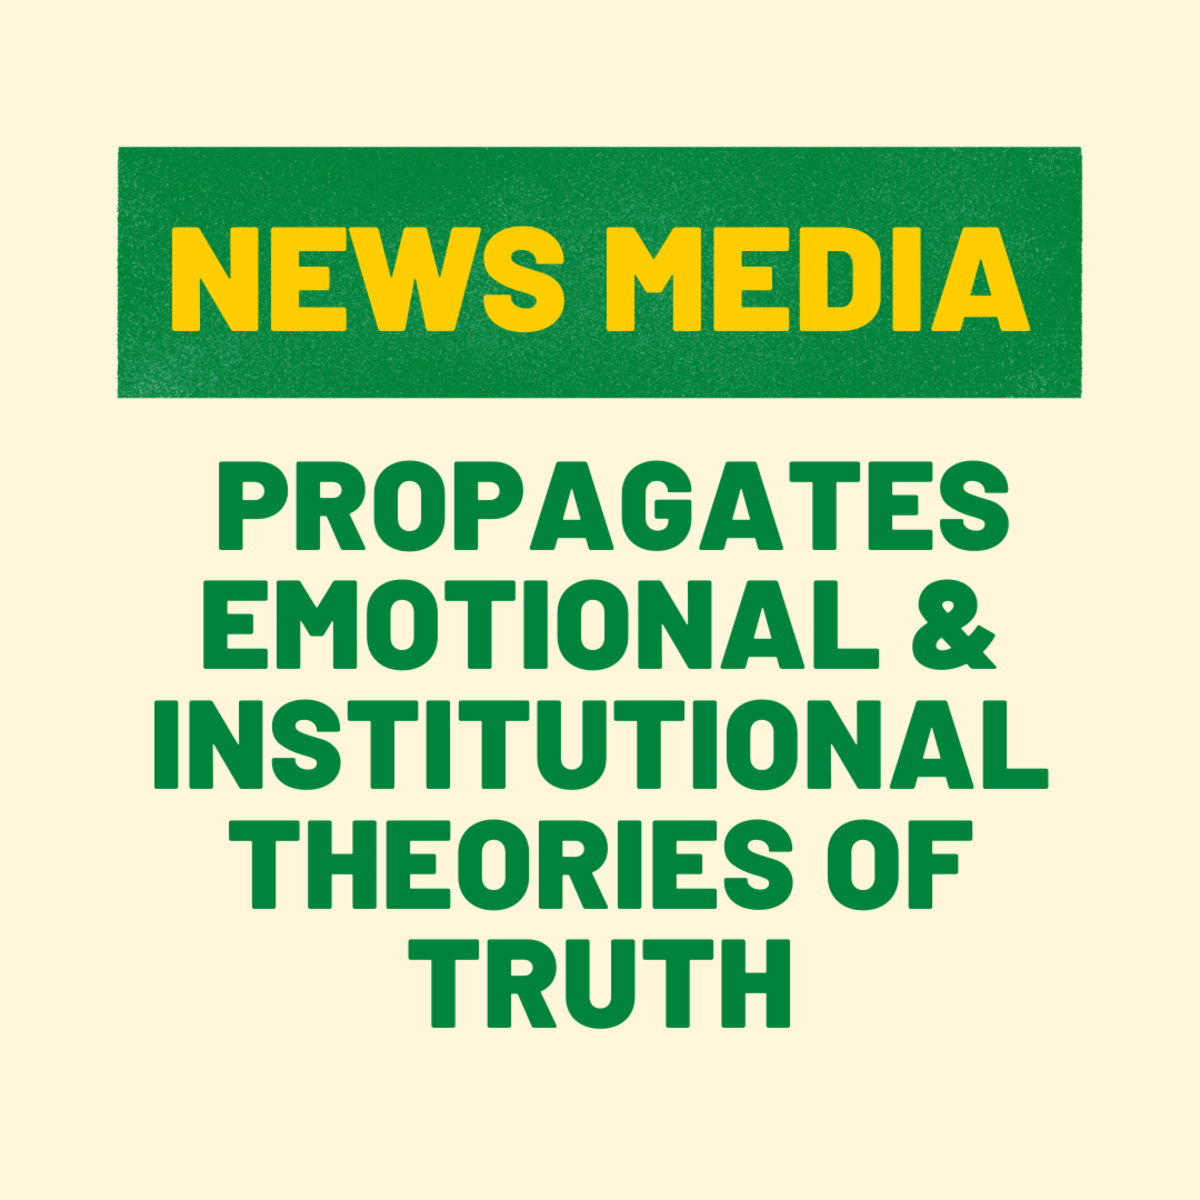 News Media Propagates Emotional & Institutional Theories of Truth